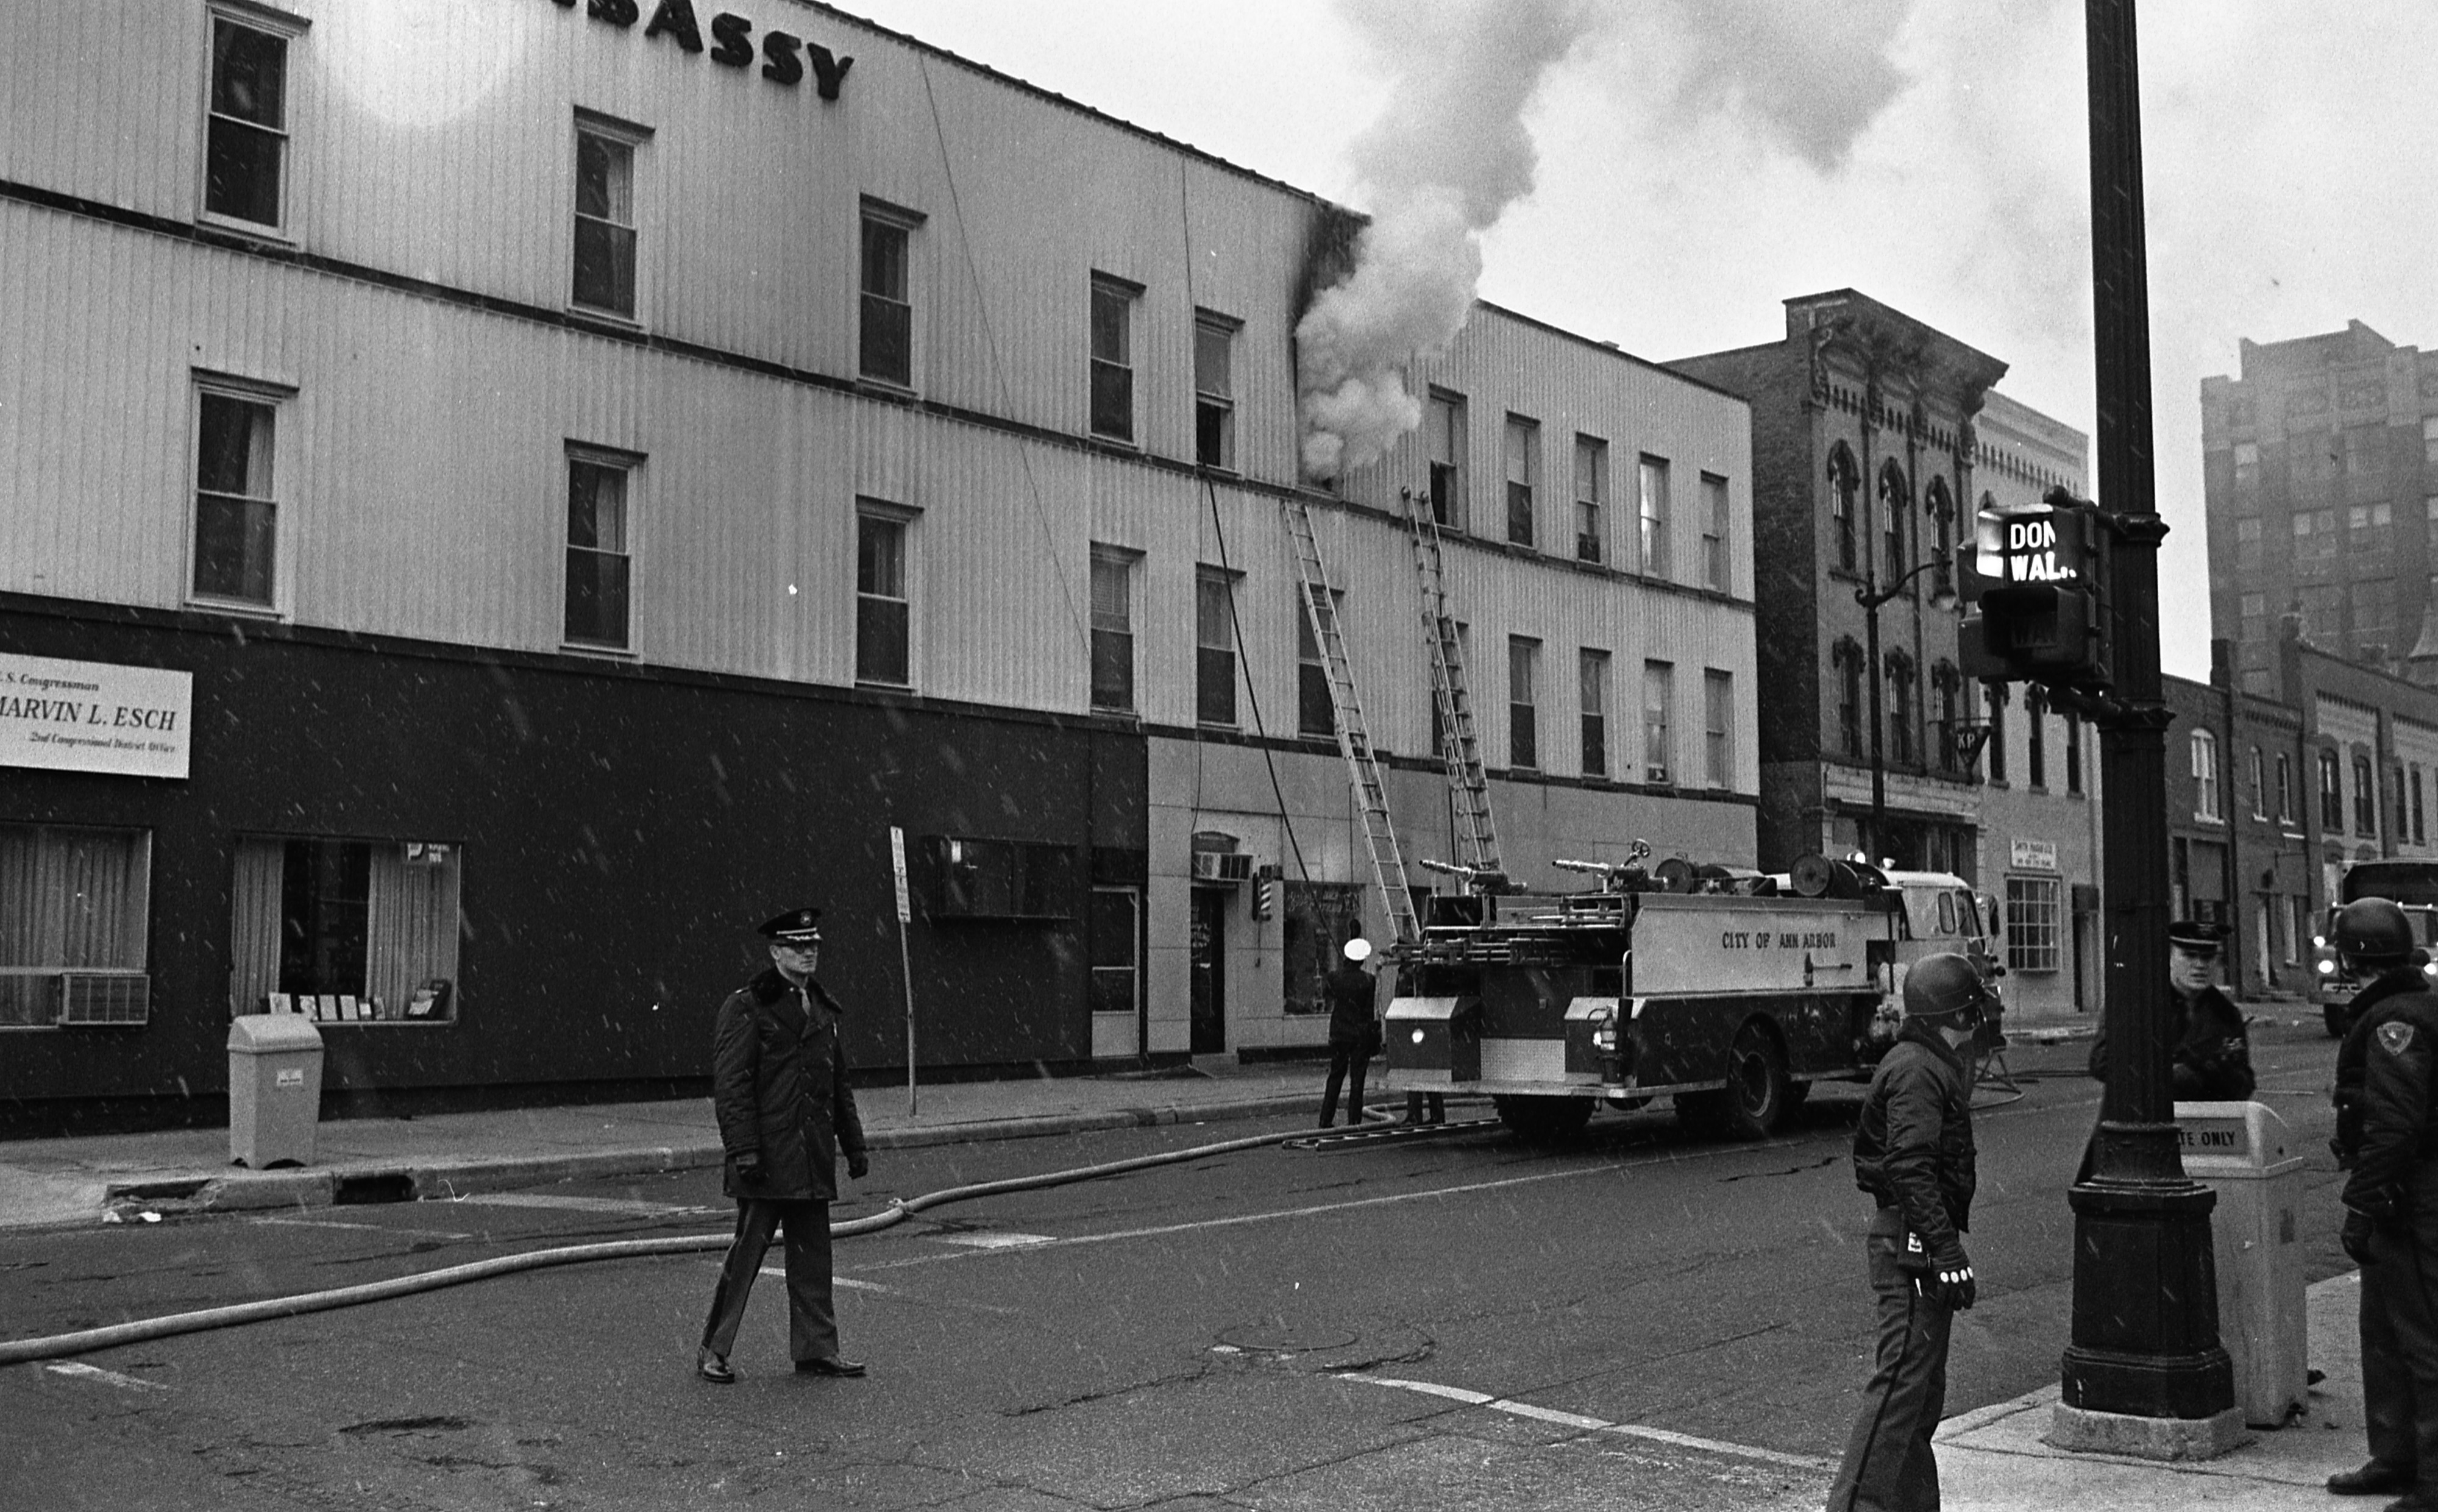 Firefighters At The Scene Of A Fire At The Embassy Hotel, December 1974 image